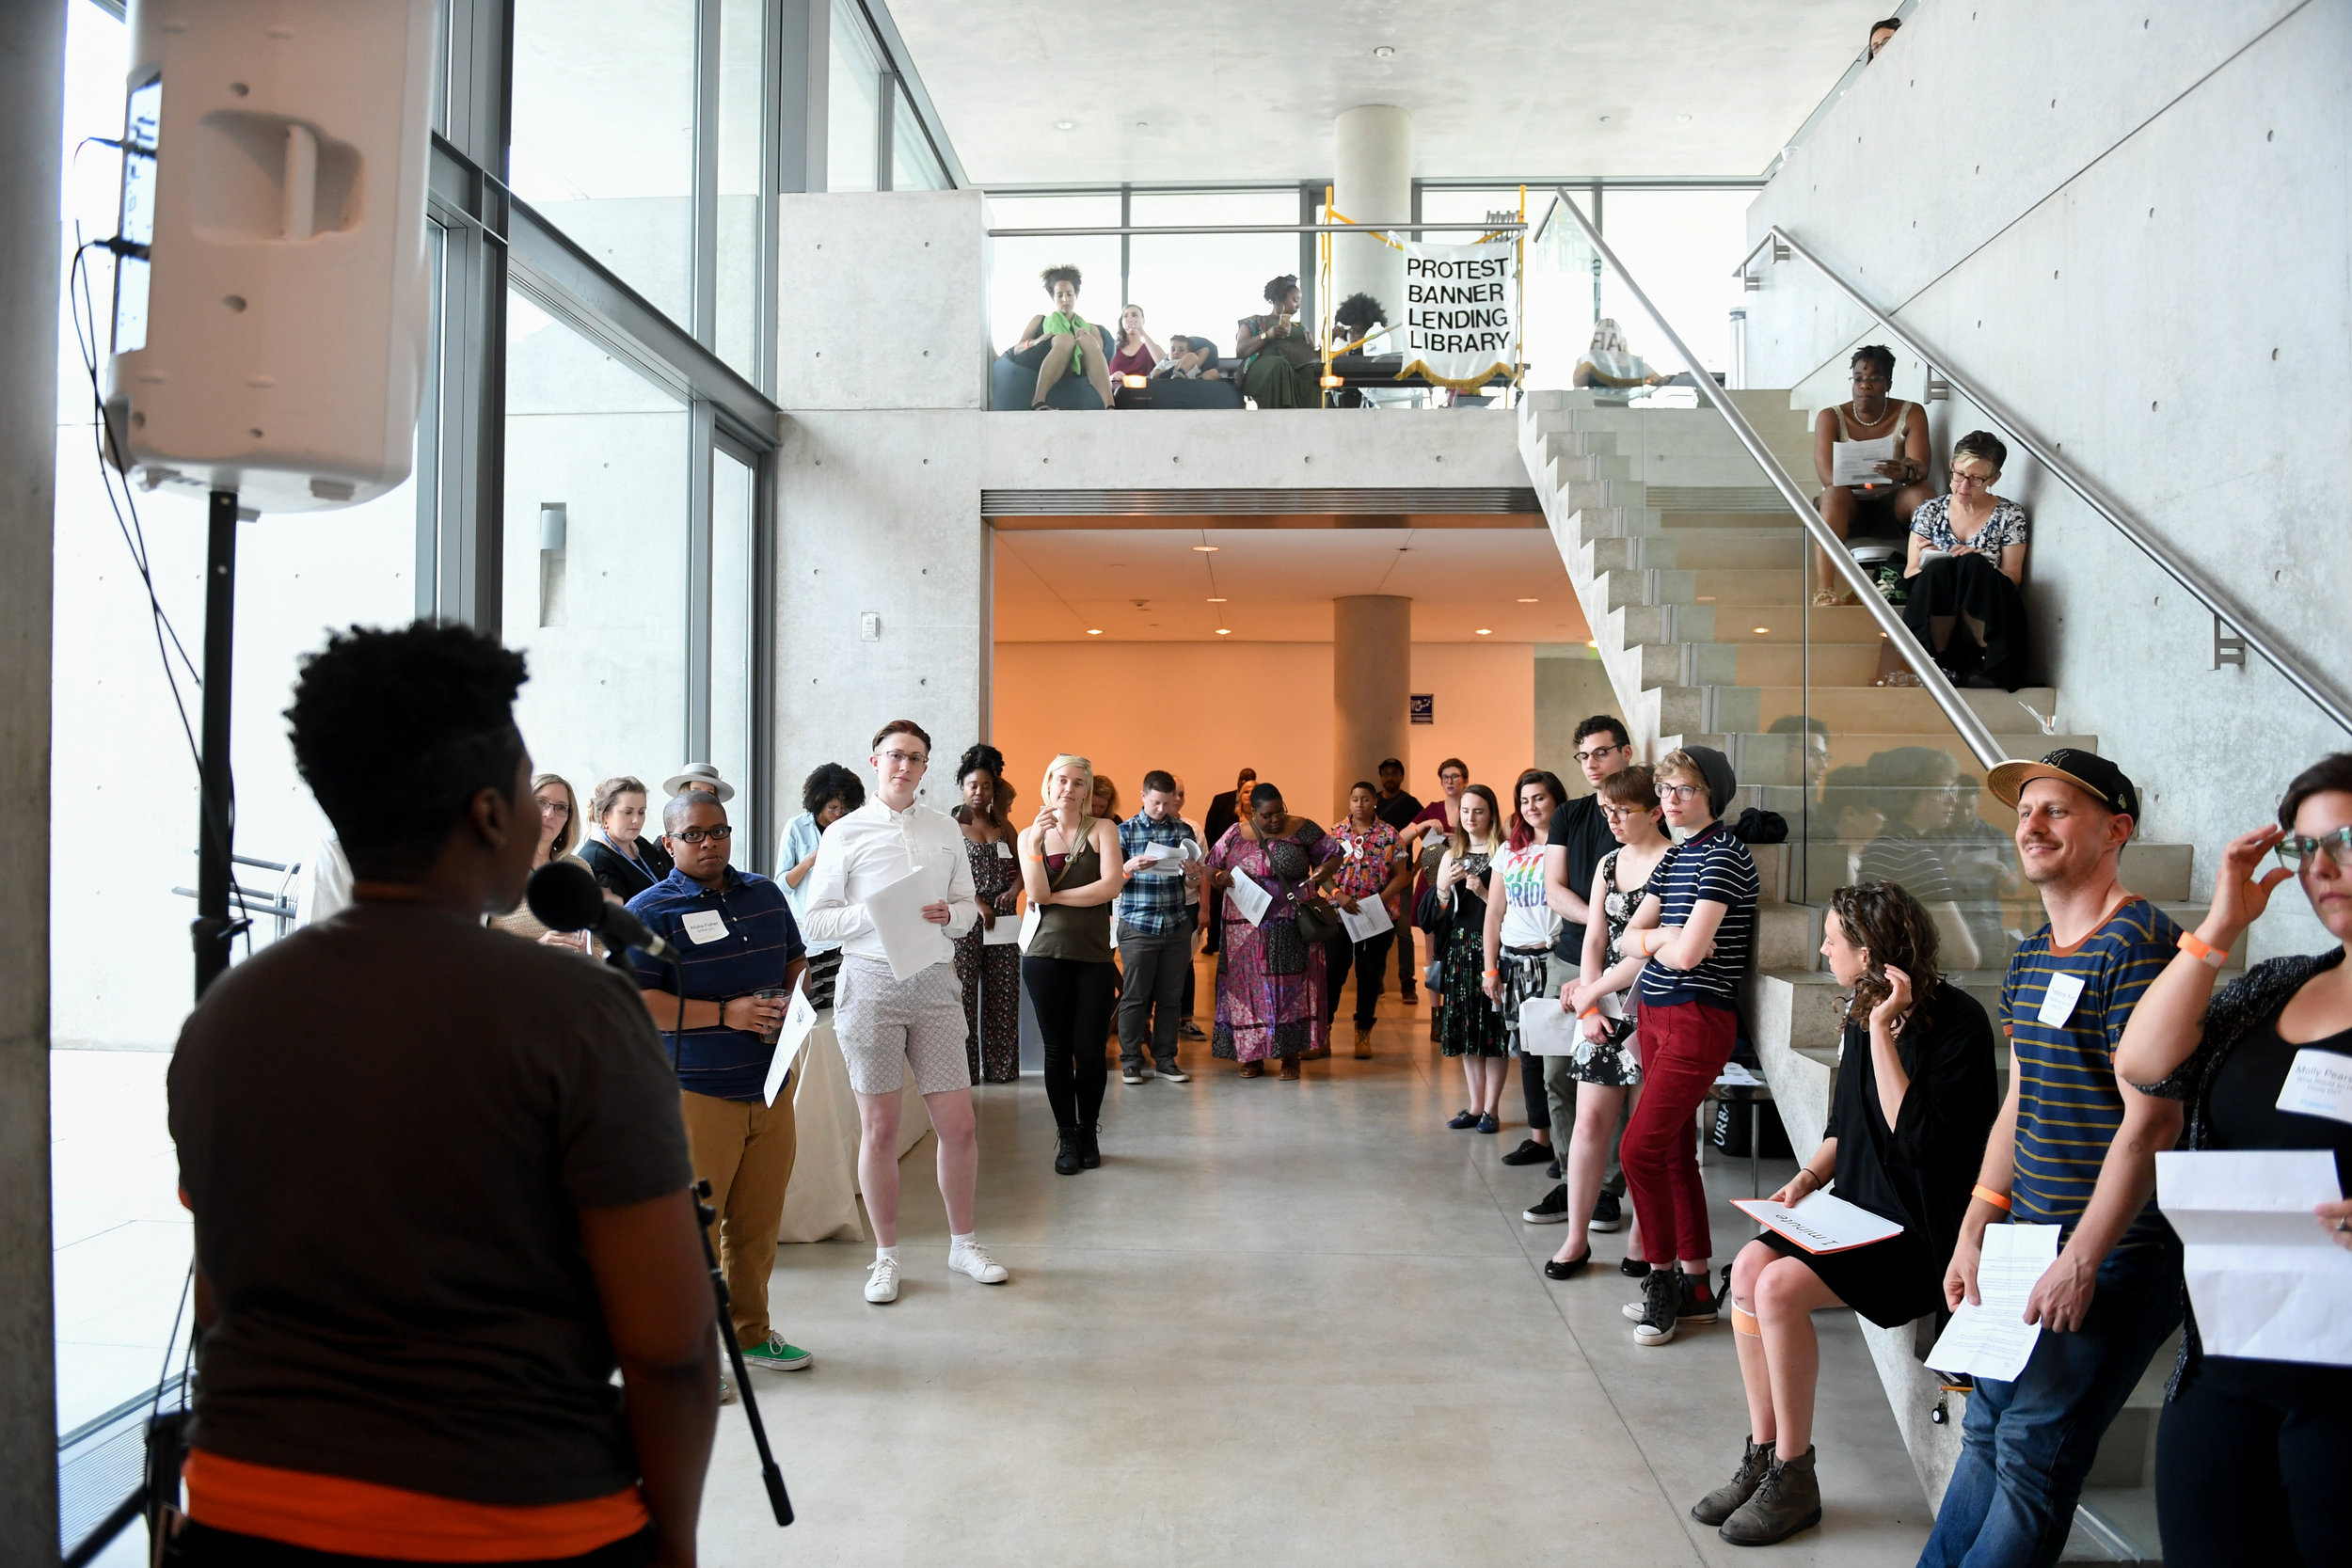 The Spark Dinner: LGBTQ+ Resources at Pulitzer Arts Foundation, 2018; Photograph by Michael Thomas